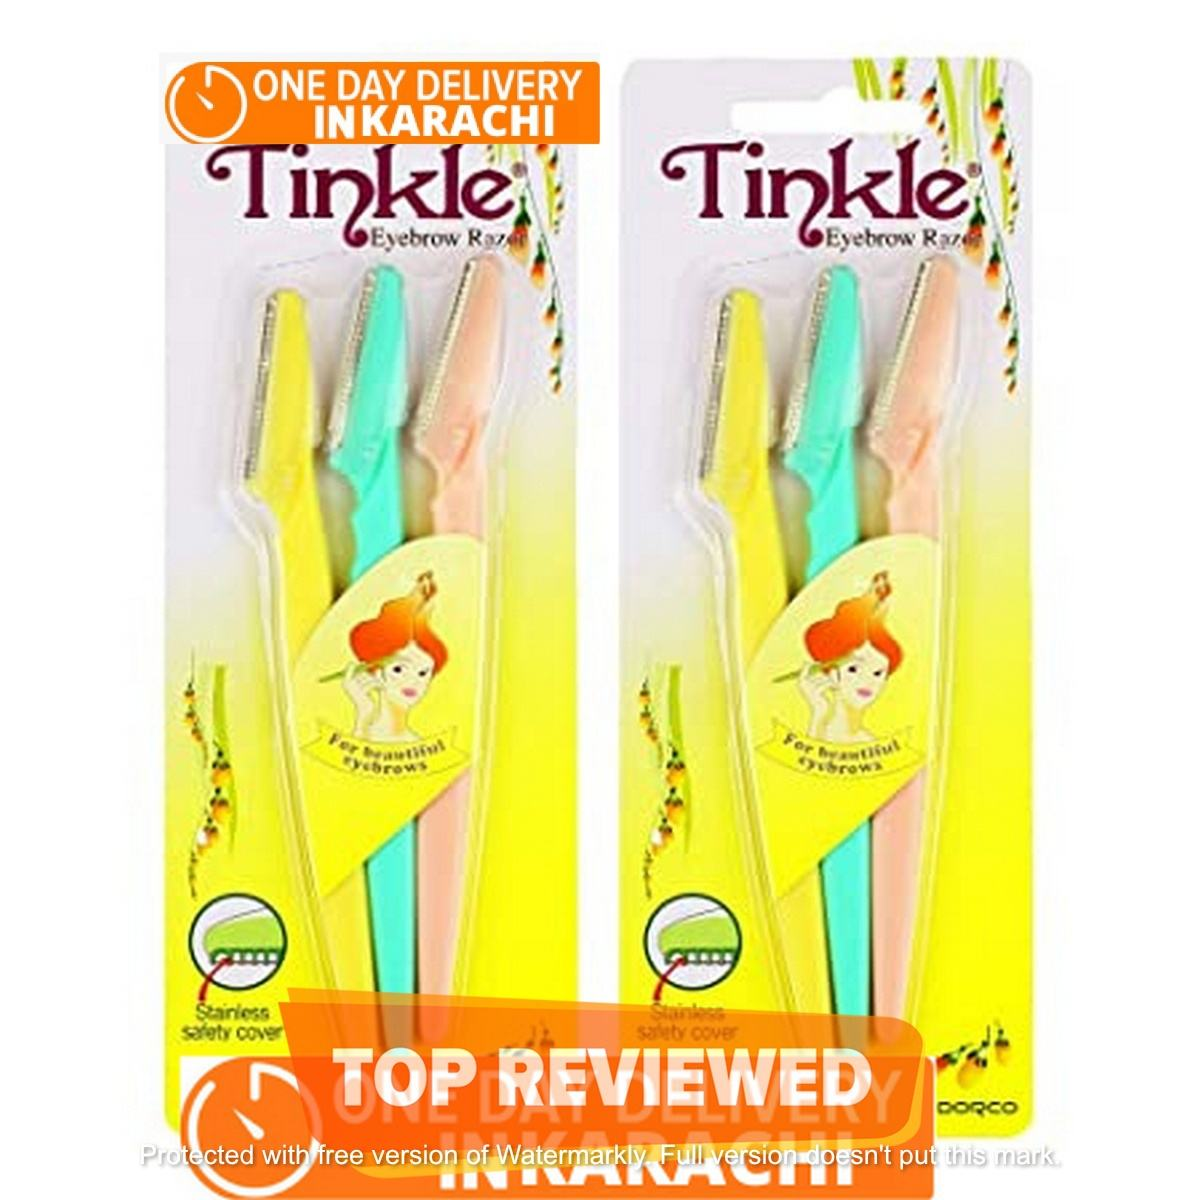 Tinkle Eyebrow Razor FS-Traders 3 Pack, Eyebrow Face Hair Removal & Shaper (3 Pieces)